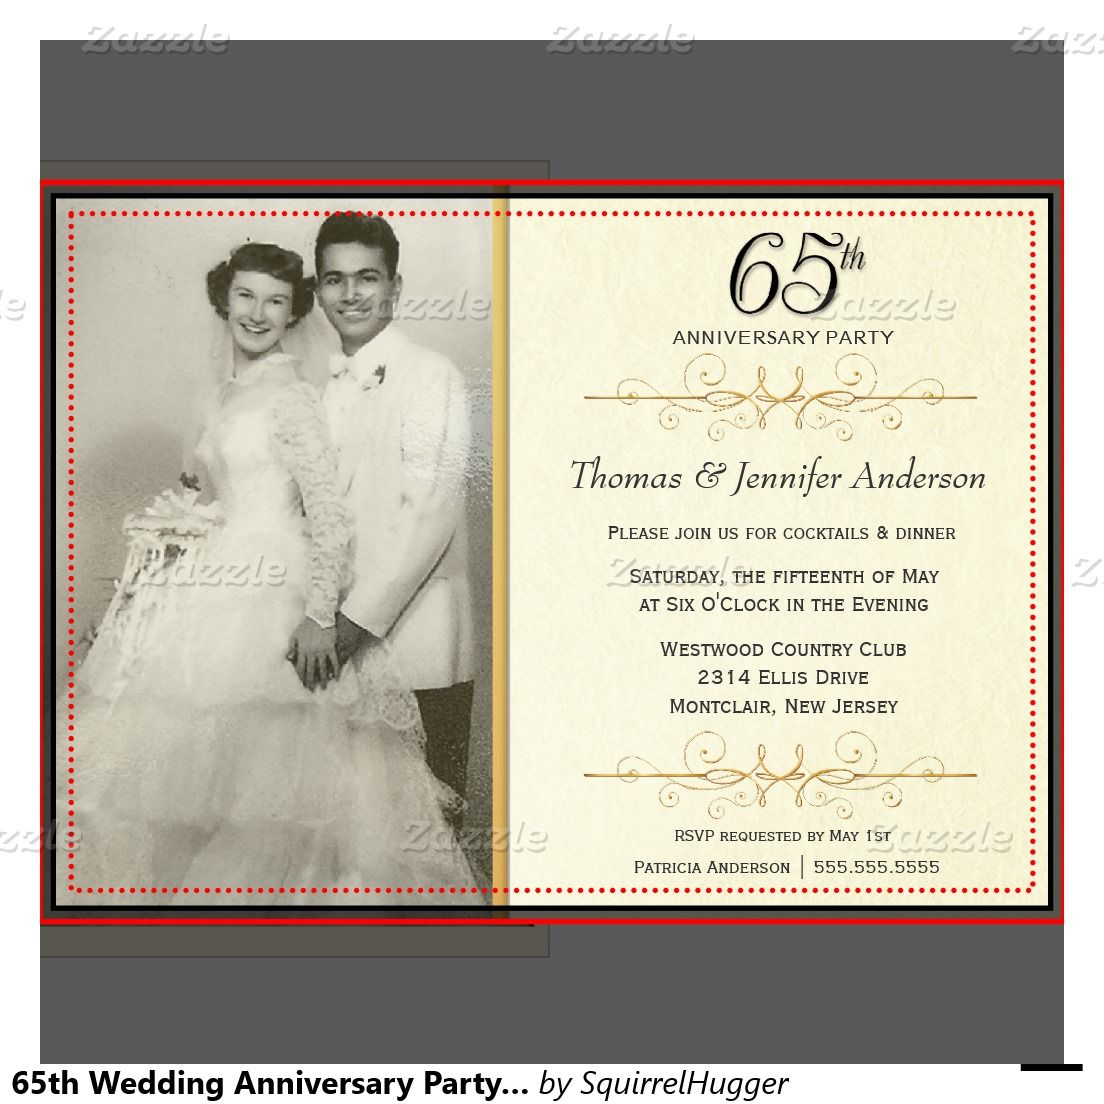 65th wedding anniversary invitations google search invitations and cards pinterest. Black Bedroom Furniture Sets. Home Design Ideas